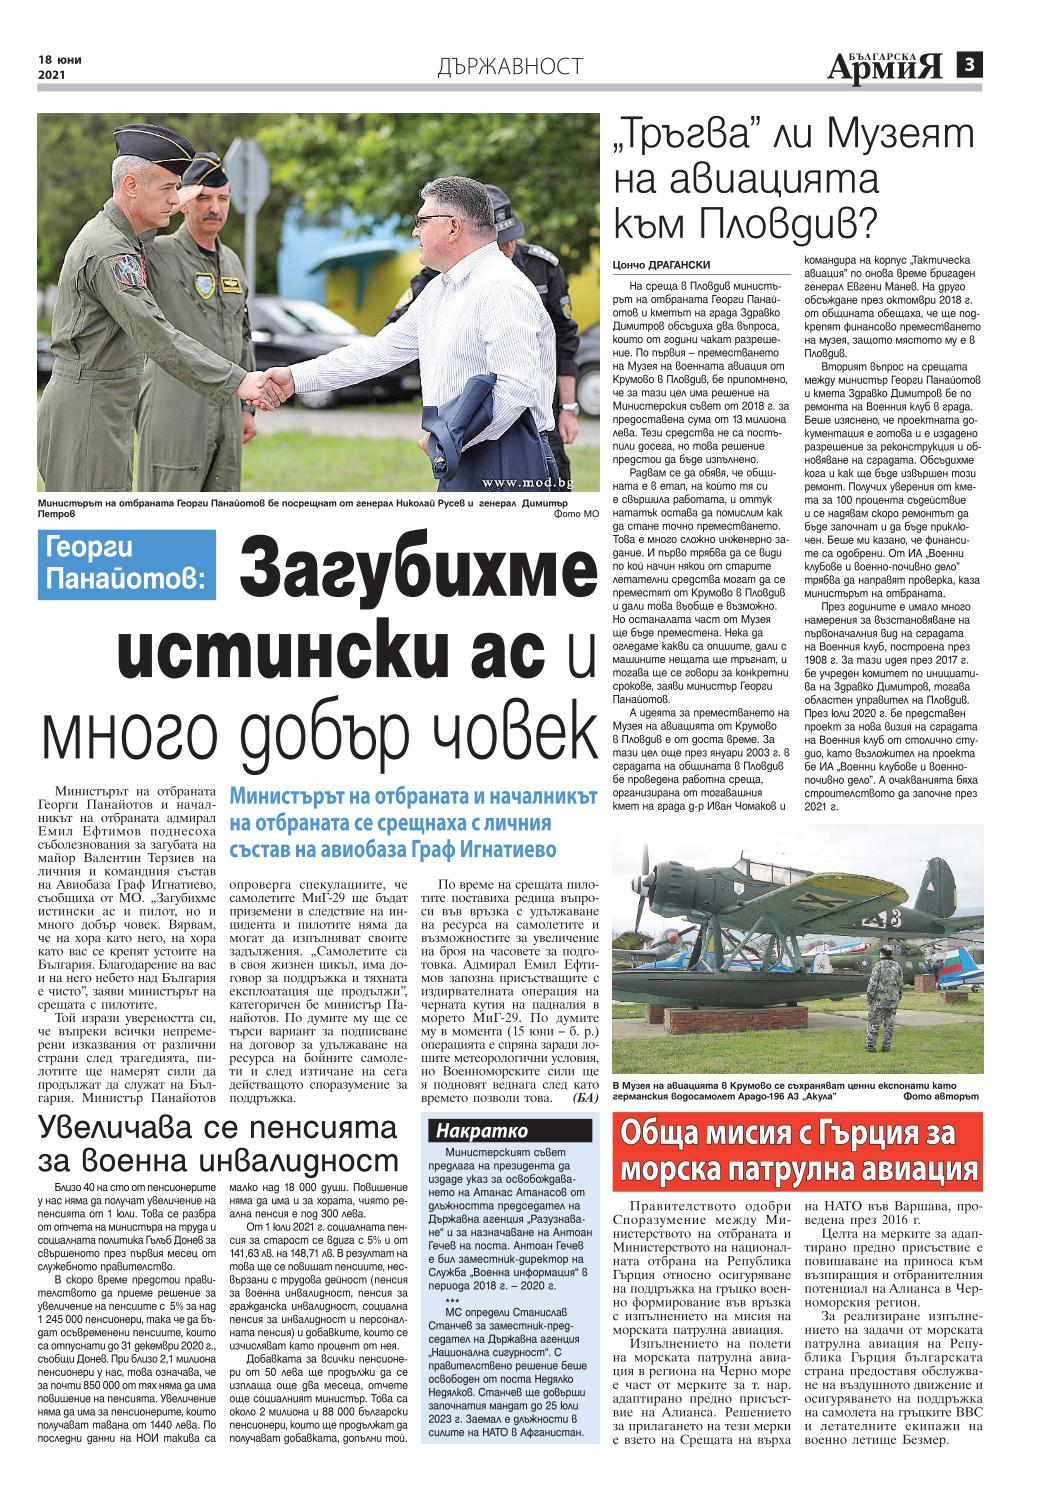 https://armymedia.bg/wp-content/uploads/2021/06/03.page1_-2.jpg